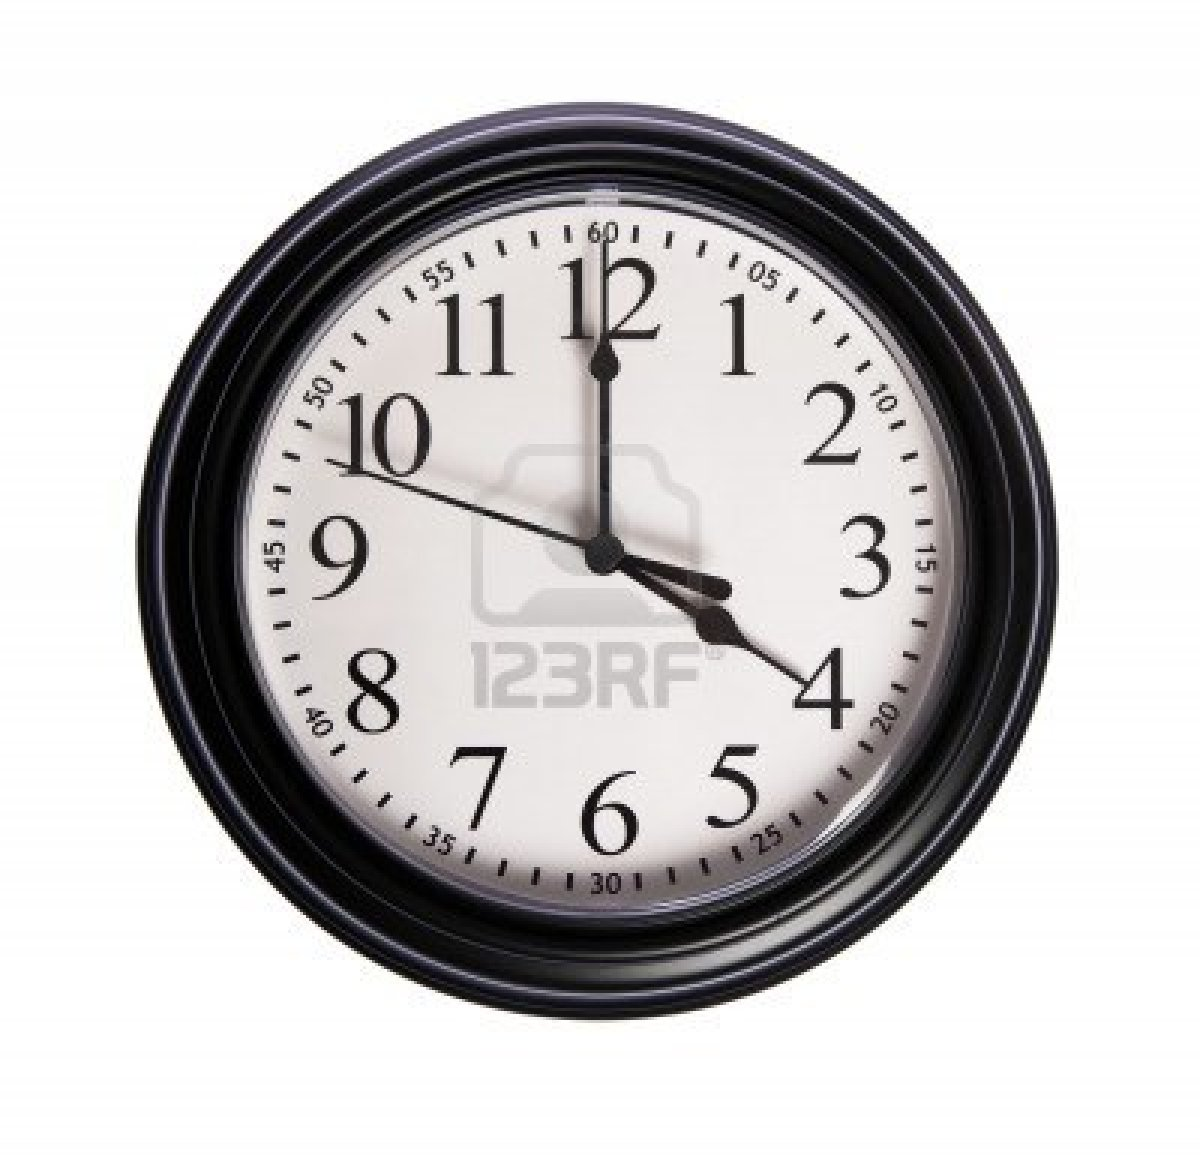 6217940-wall-clock-shows-time-4-00-on-white-isolated-background.jpg